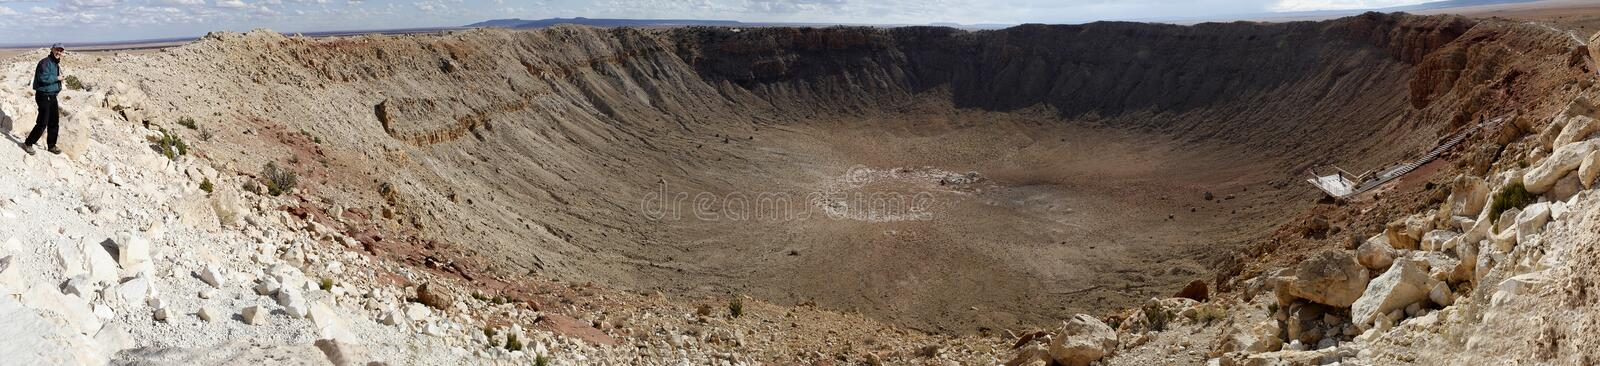 Download Meteor Crater Panorama stock photo. Image of crater, impact - 12260896